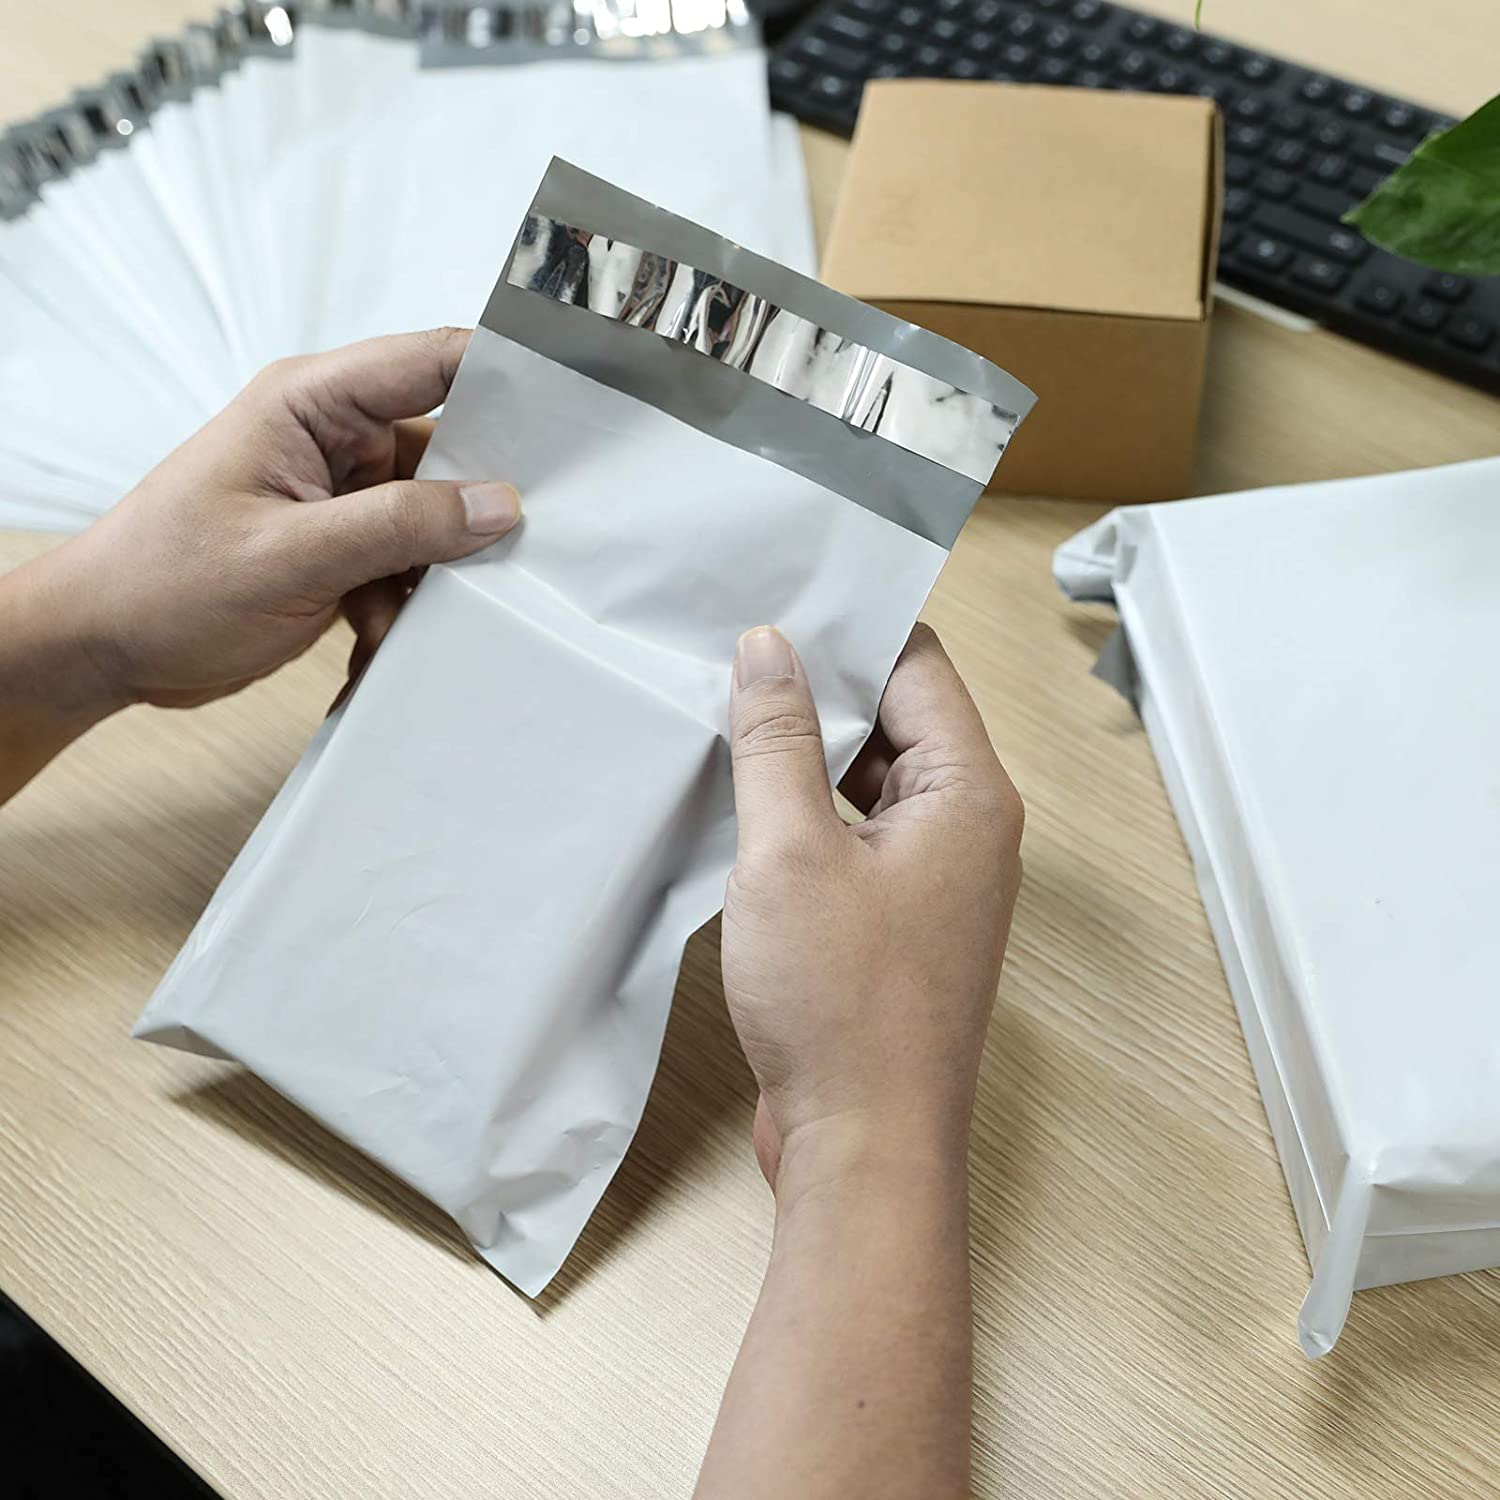 9x12 100pcs White Poly Mailers Envelopes Shipping Bags with Self Sealing Adhesive Strip Enhance Durability Shipping Mailers Bags for Business Office with Waterproof /& Tear-Proof Postal Bags